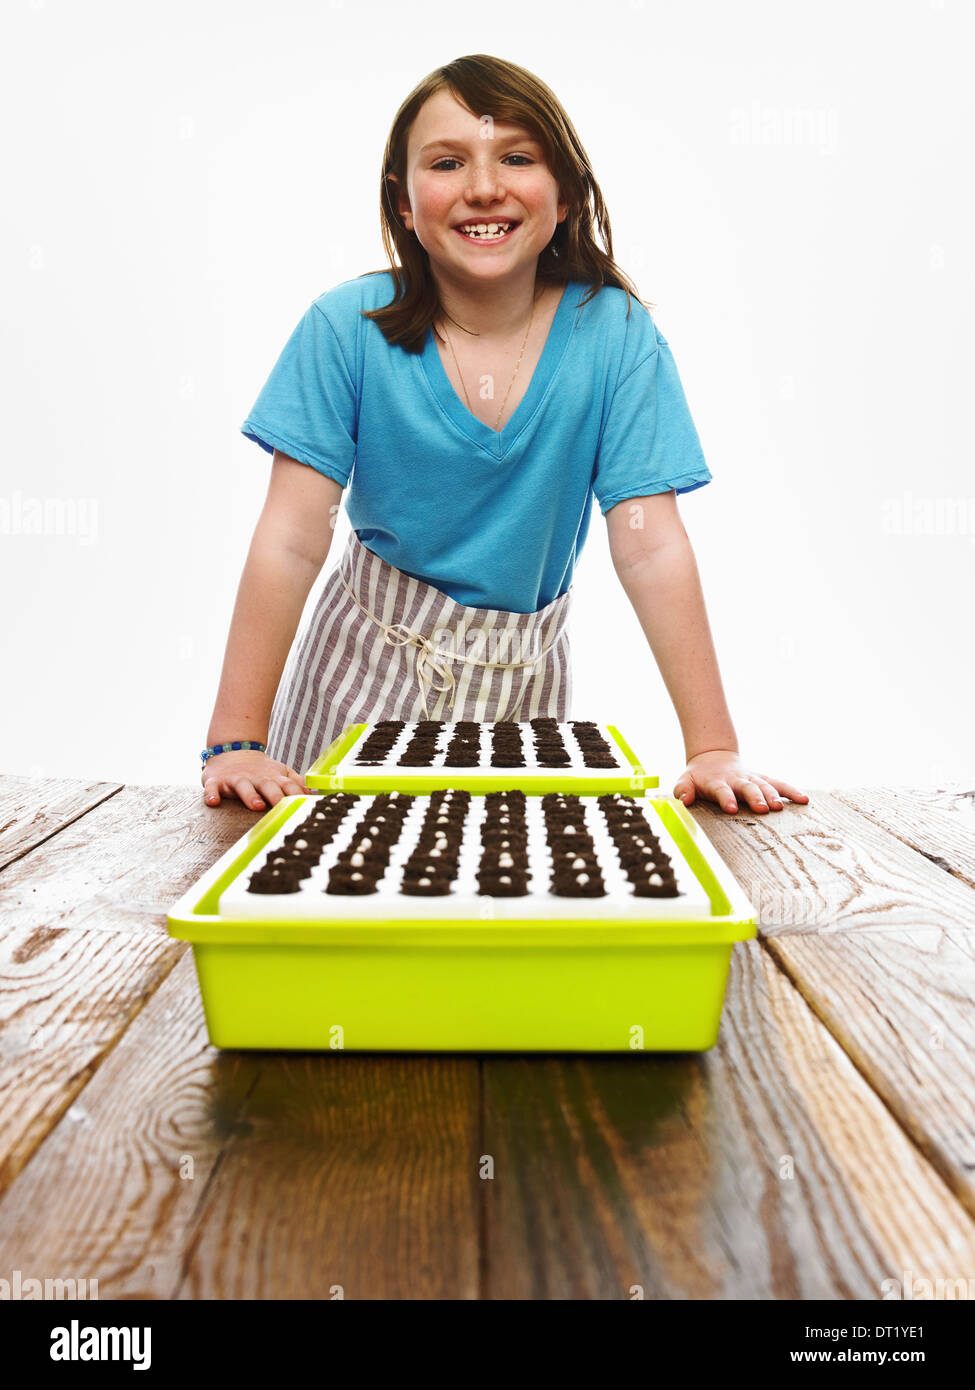 A young girl leaning on a table with two tray of freshly planted seeds resting on dark organic soil - Stock Image